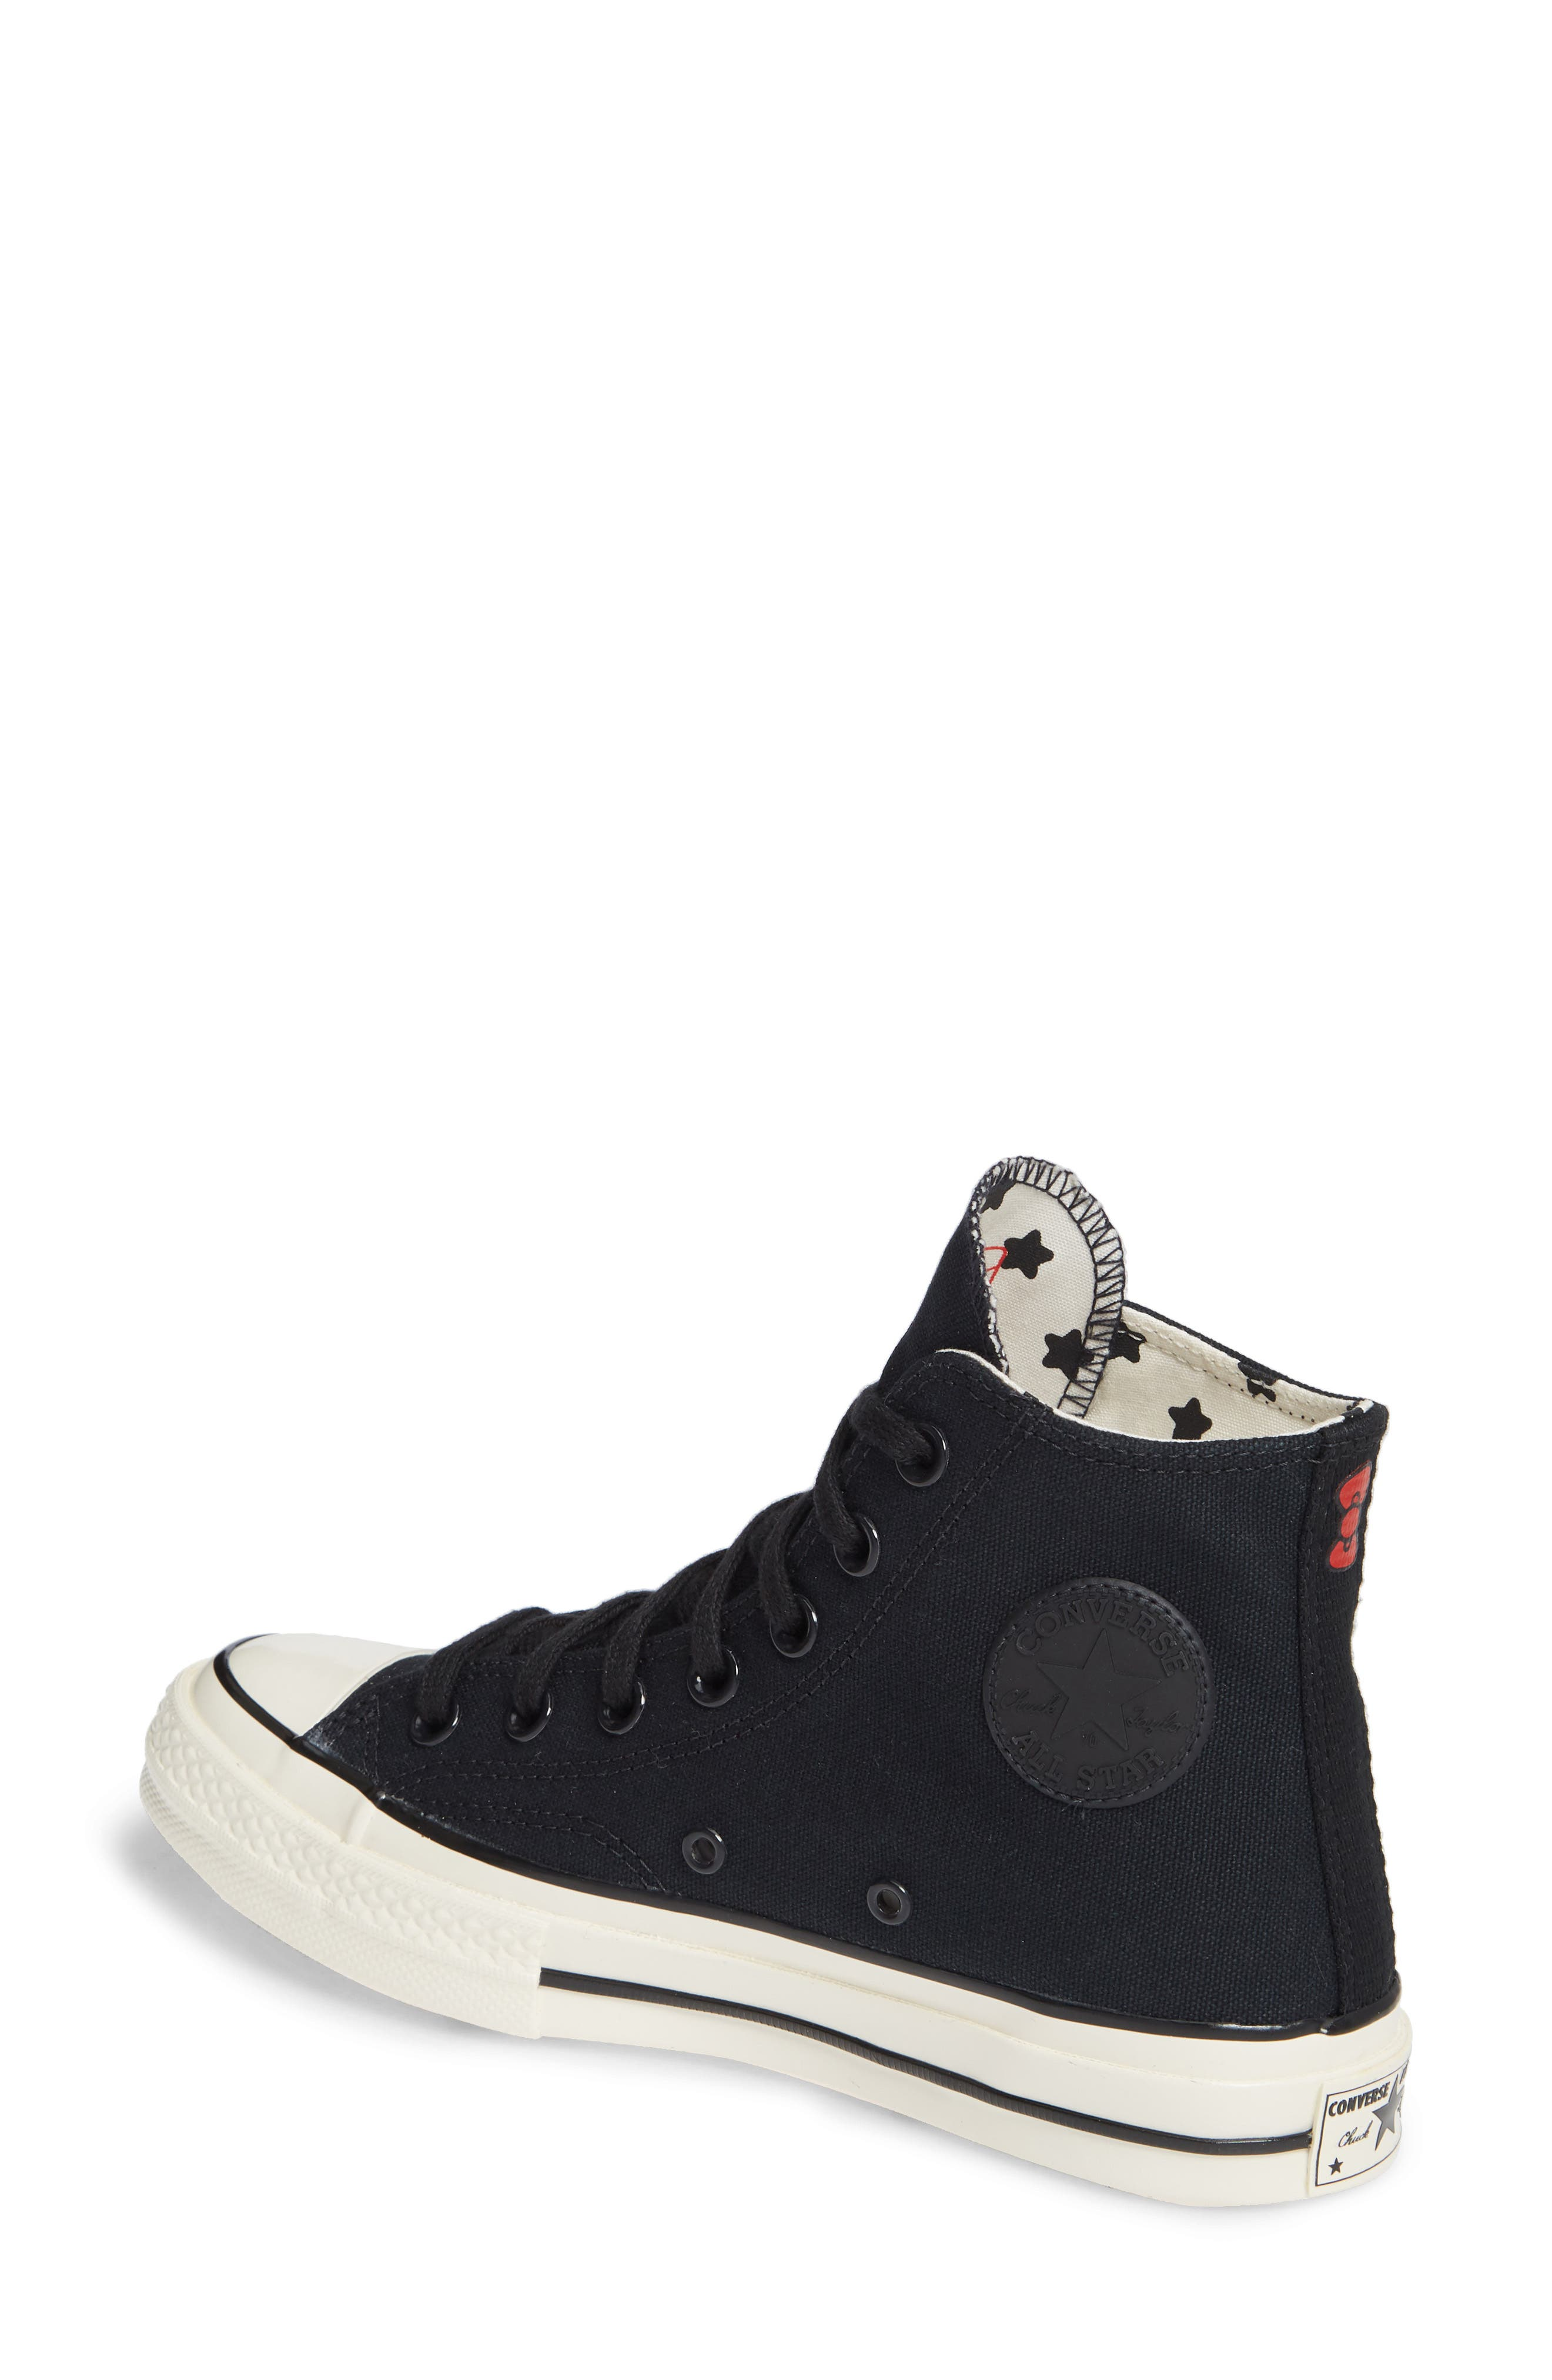 x Hello Kitty<sup>®</sup> Chuck Taylor<sup>®</sup> All Star<sup>®</sup> CT 70 High Top Sneaker,                             Alternate thumbnail 2, color,                             CONVERSE BLACK